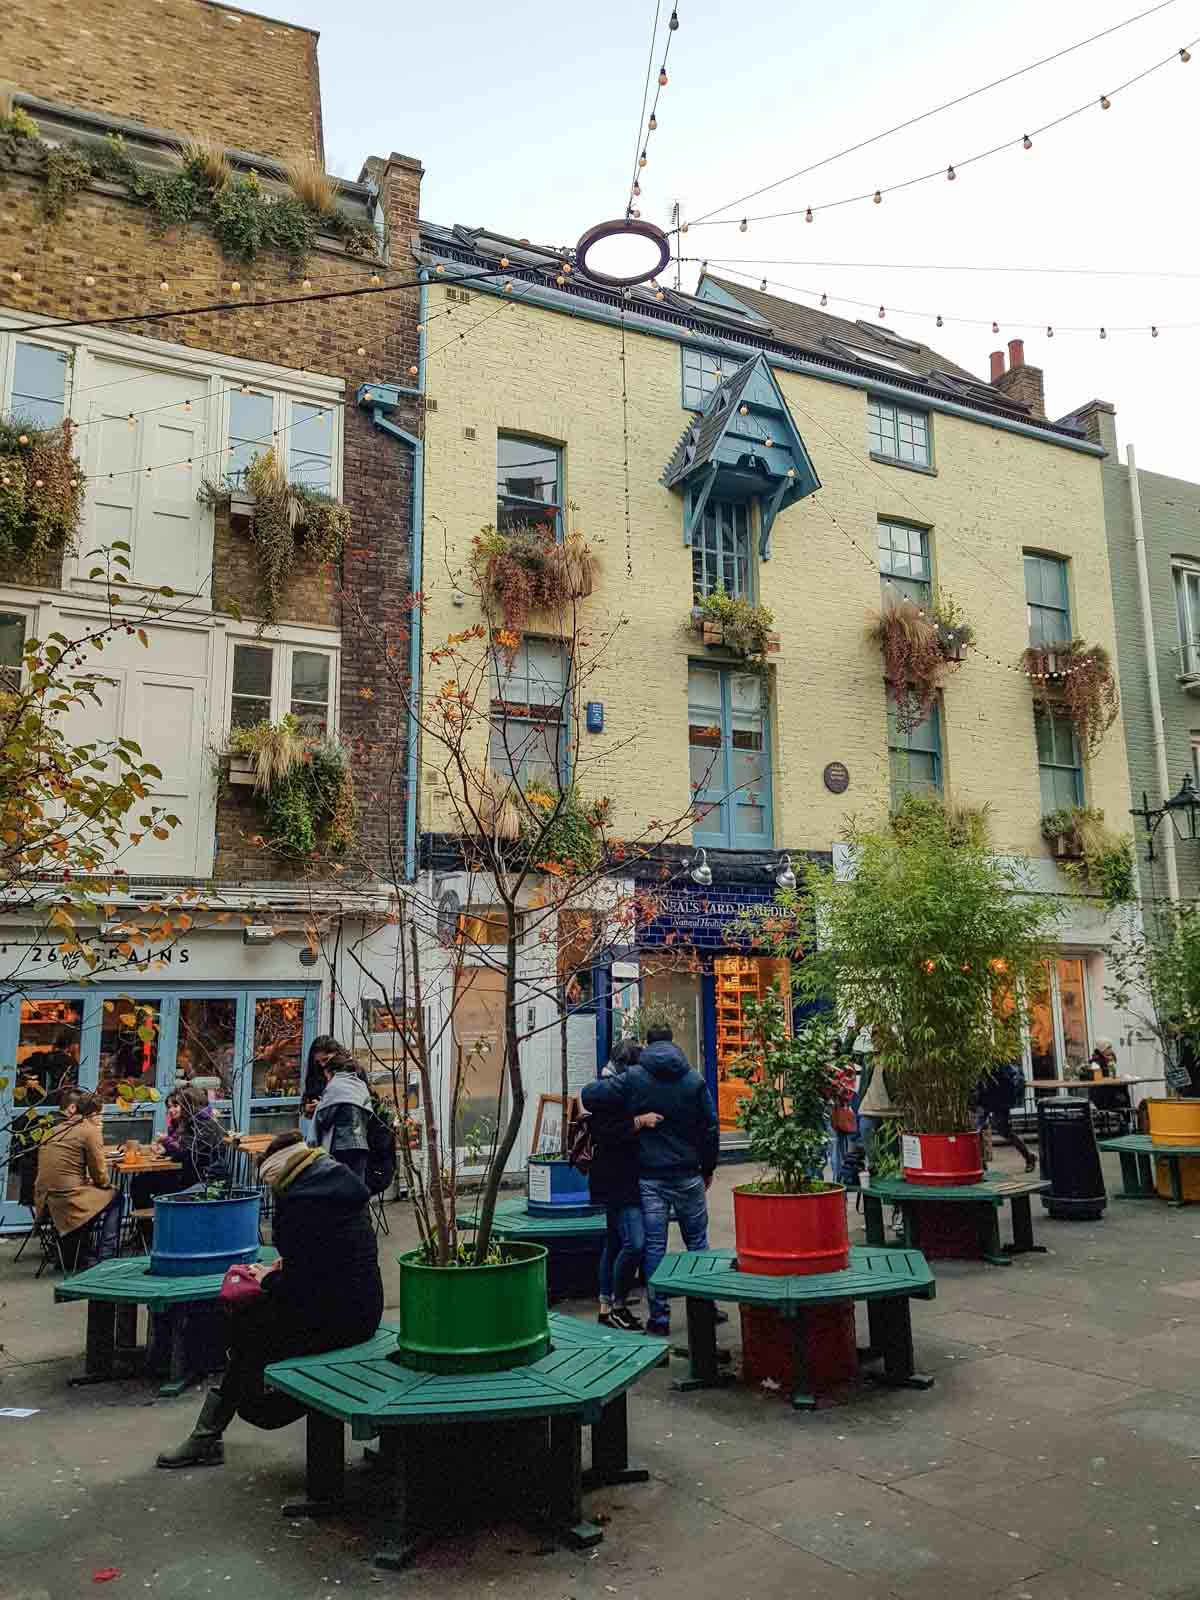 Kerst in Londen, Neal's Yard - Map of Joy